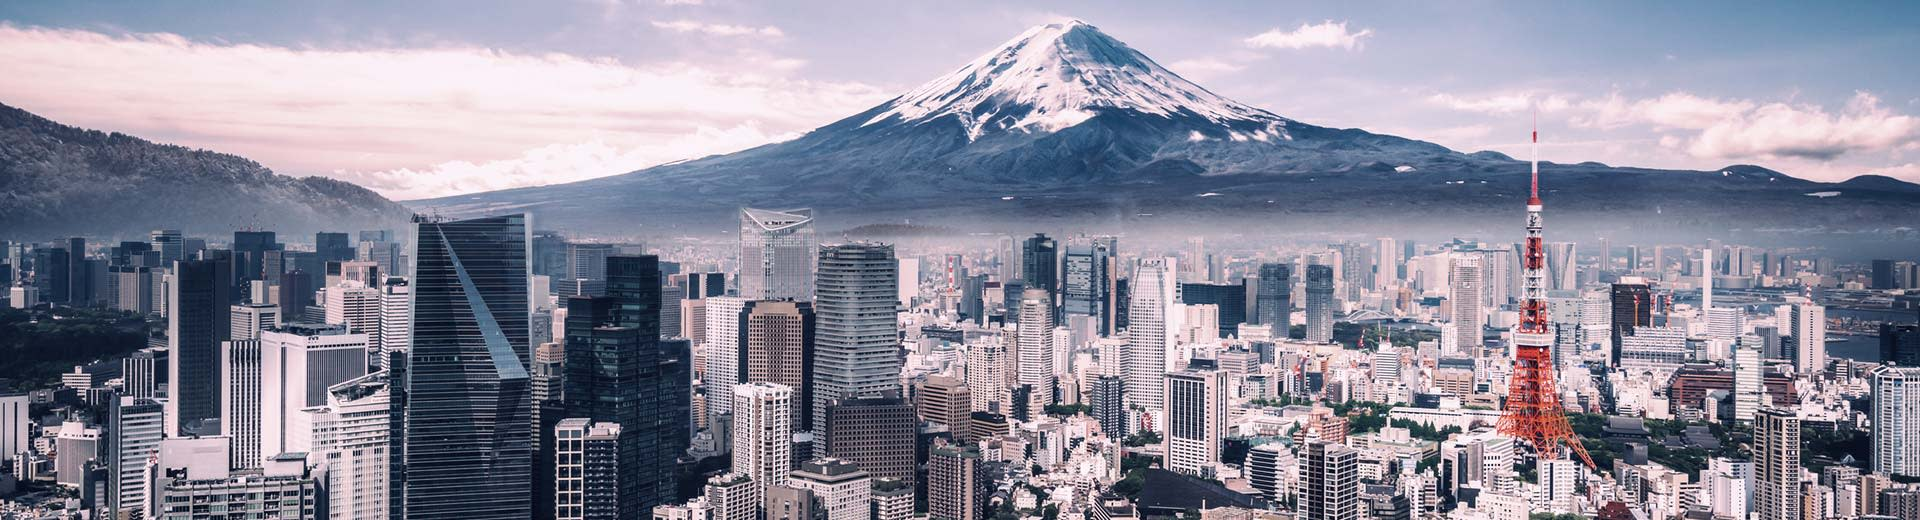 The sprawling city of Tokyo lies before the famous Mount Fuji, with more skyscrapers than you can count in the foreground